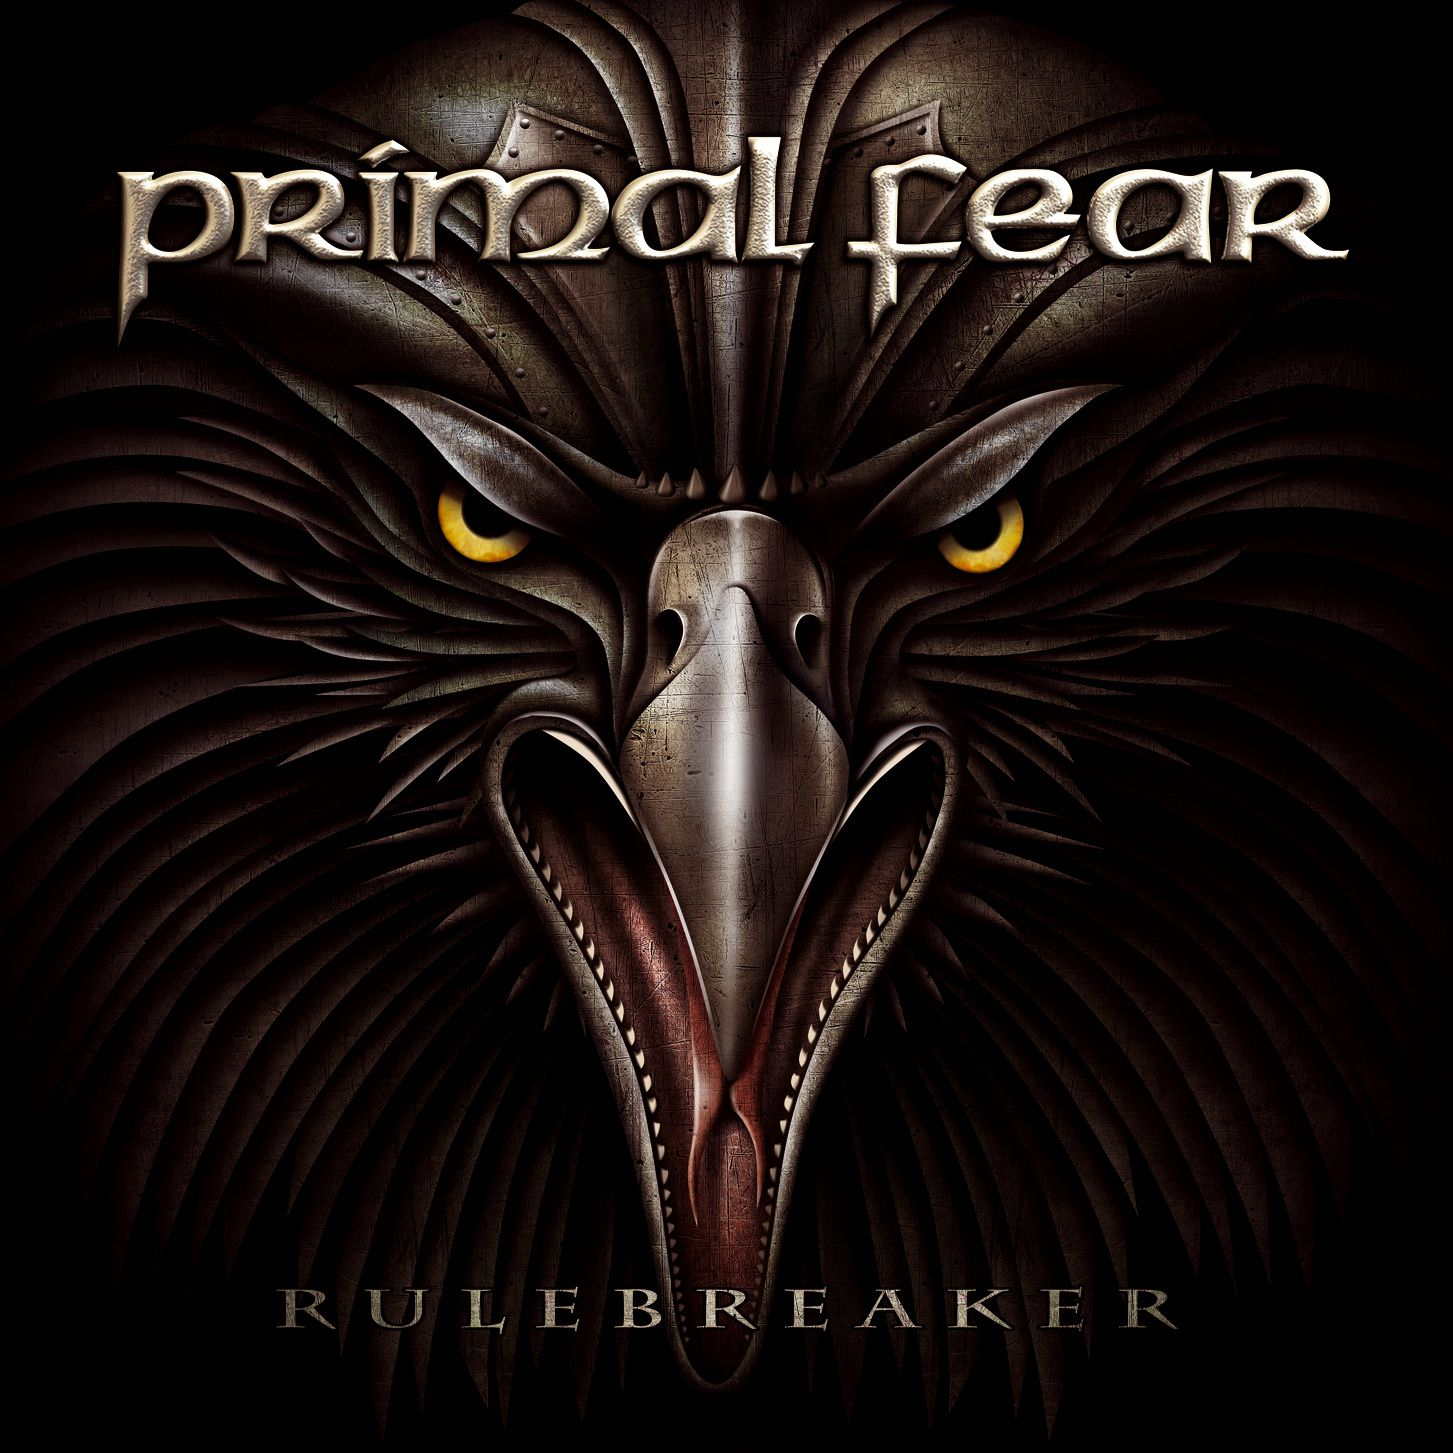 CD review PRIMAL FEAR &quot&#x3B;Rulebreaker&quot&#x3B;